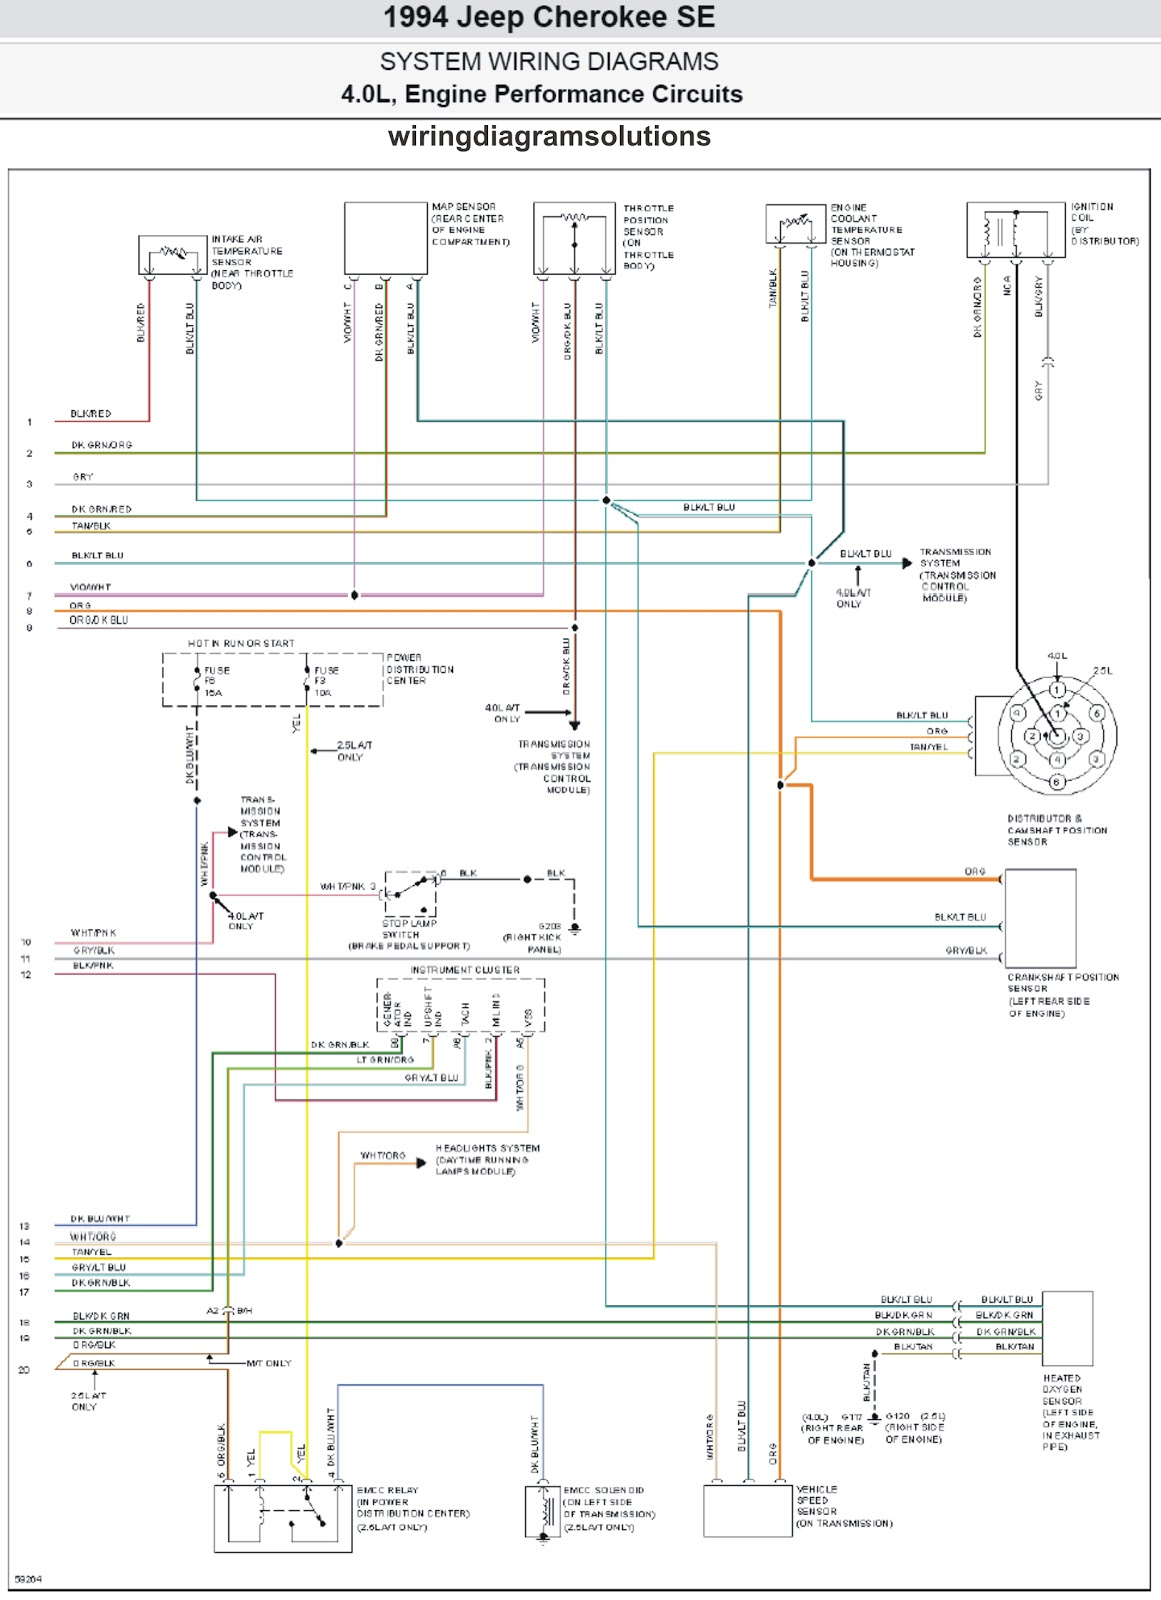 1994+Jeep+Cherokee+SE_2 2005 grand cherokee wiring diagram 2005 free wiring diagrams  at reclaimingppi.co